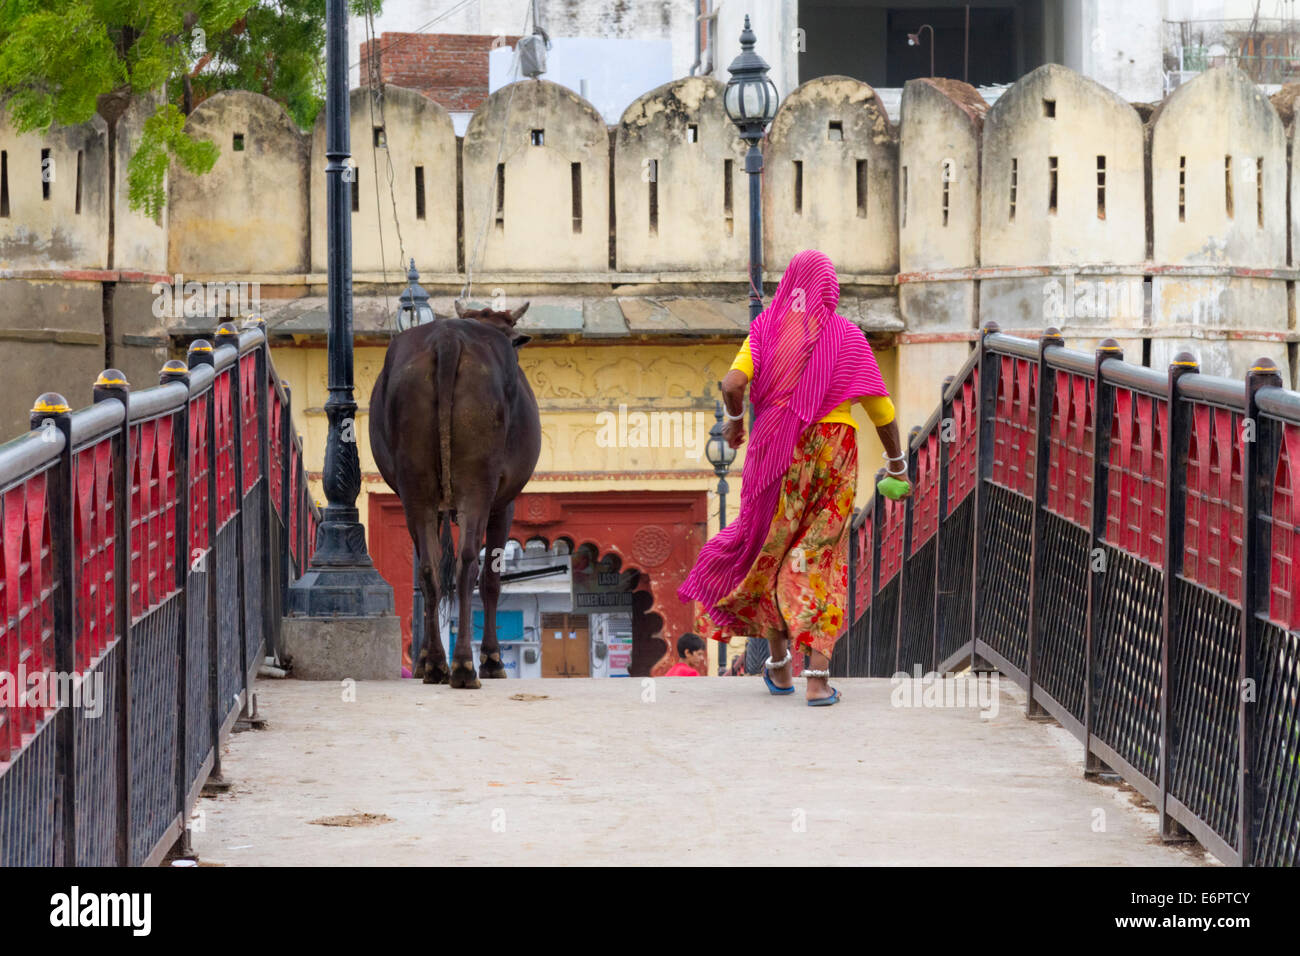 woman-in-sari-and-cow-walk-together-over-a-bridge-in-udaipur-rajastan-E6PTCY.jpg